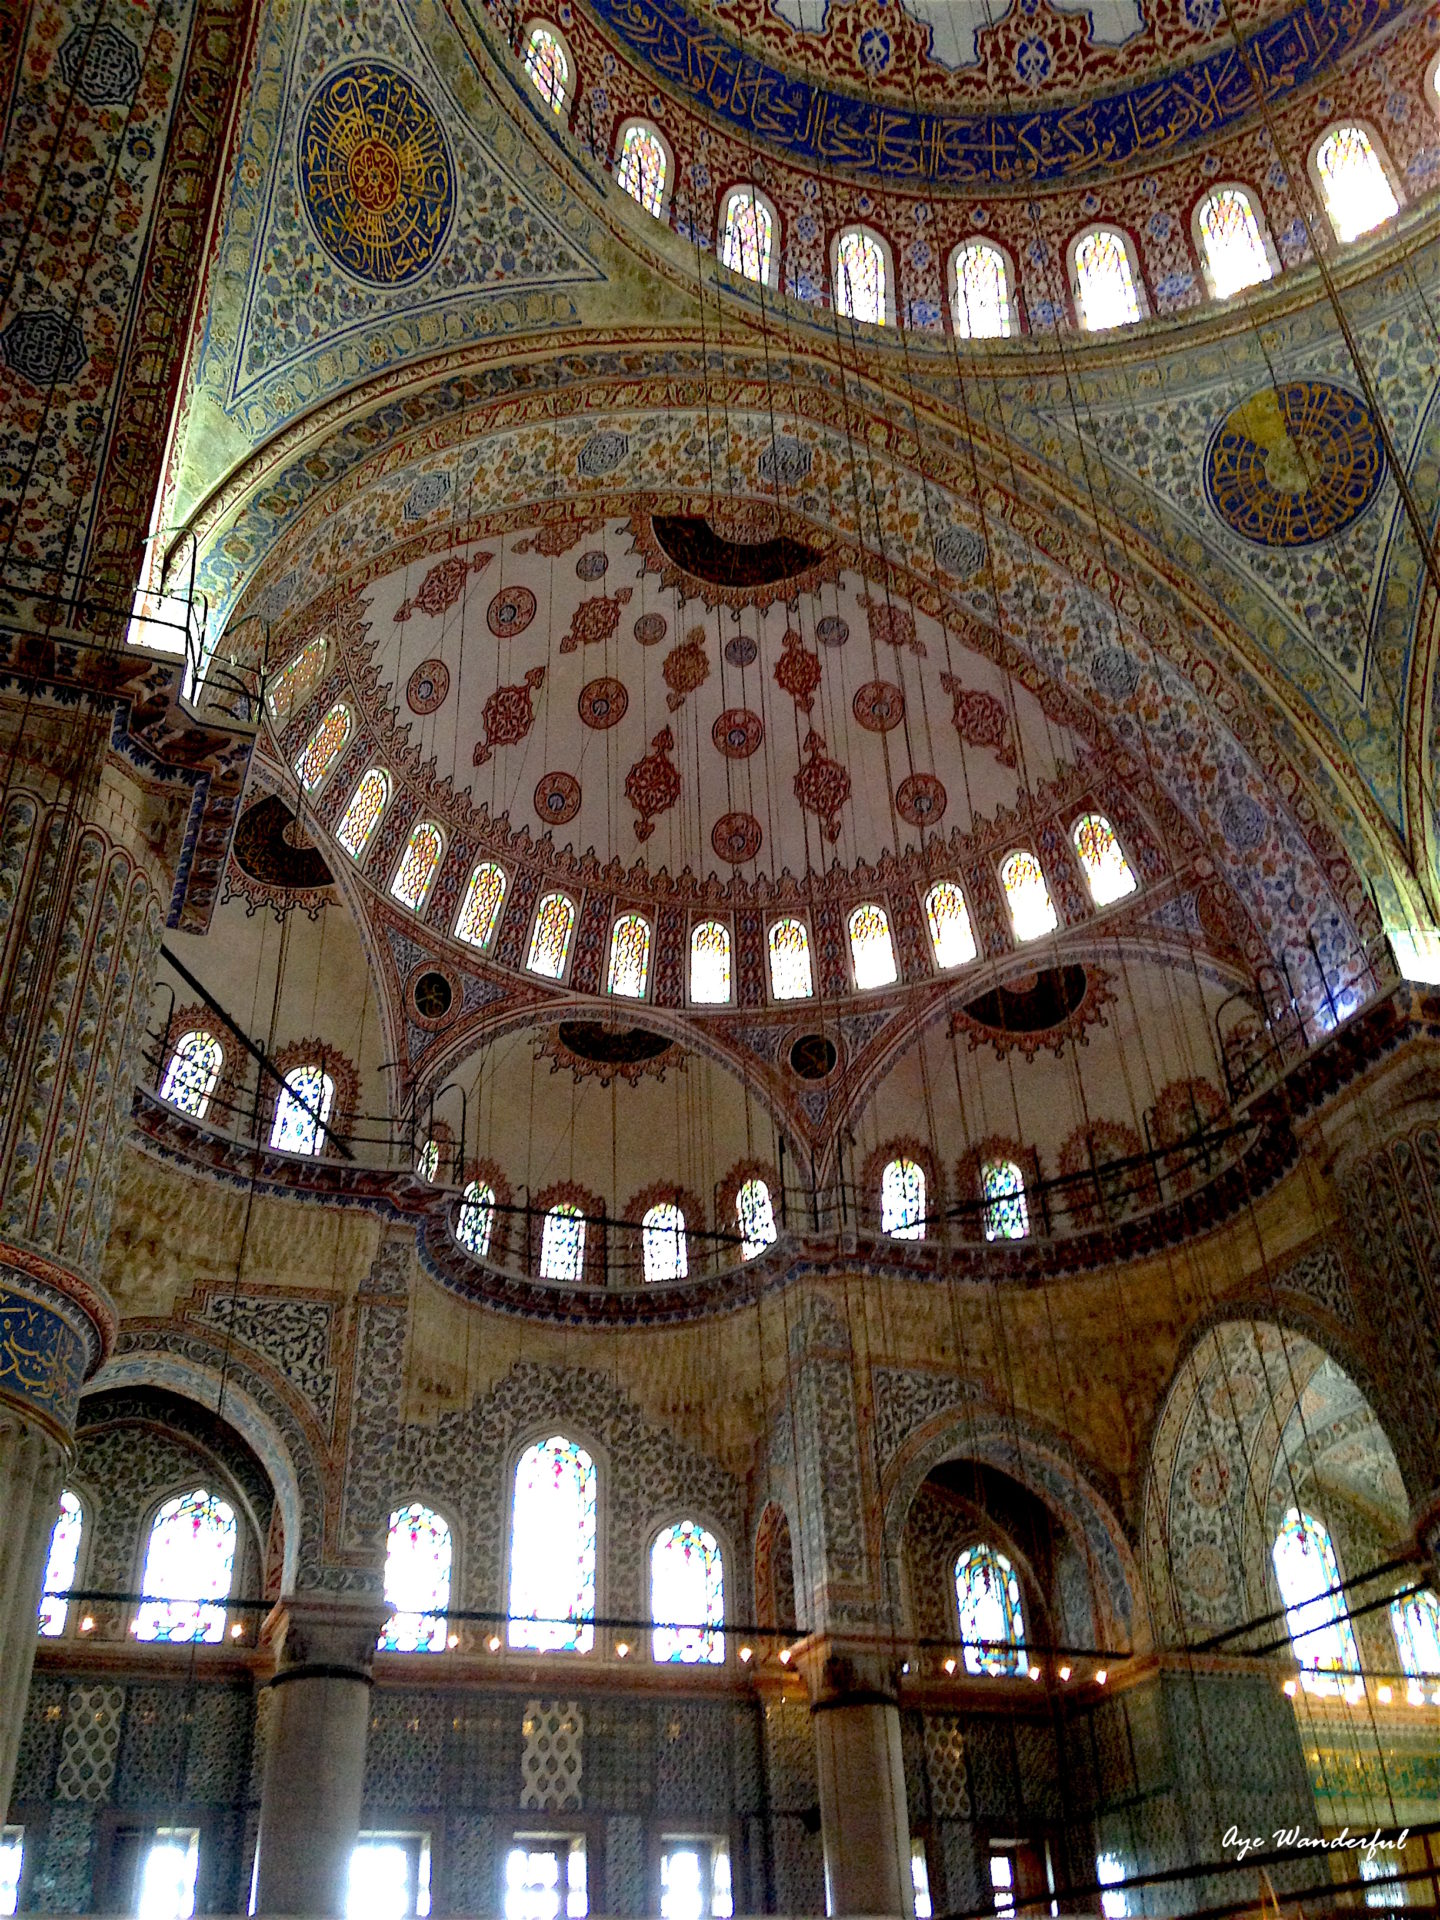 Top 10 sights in Istanbul – Attractions and Must-sees